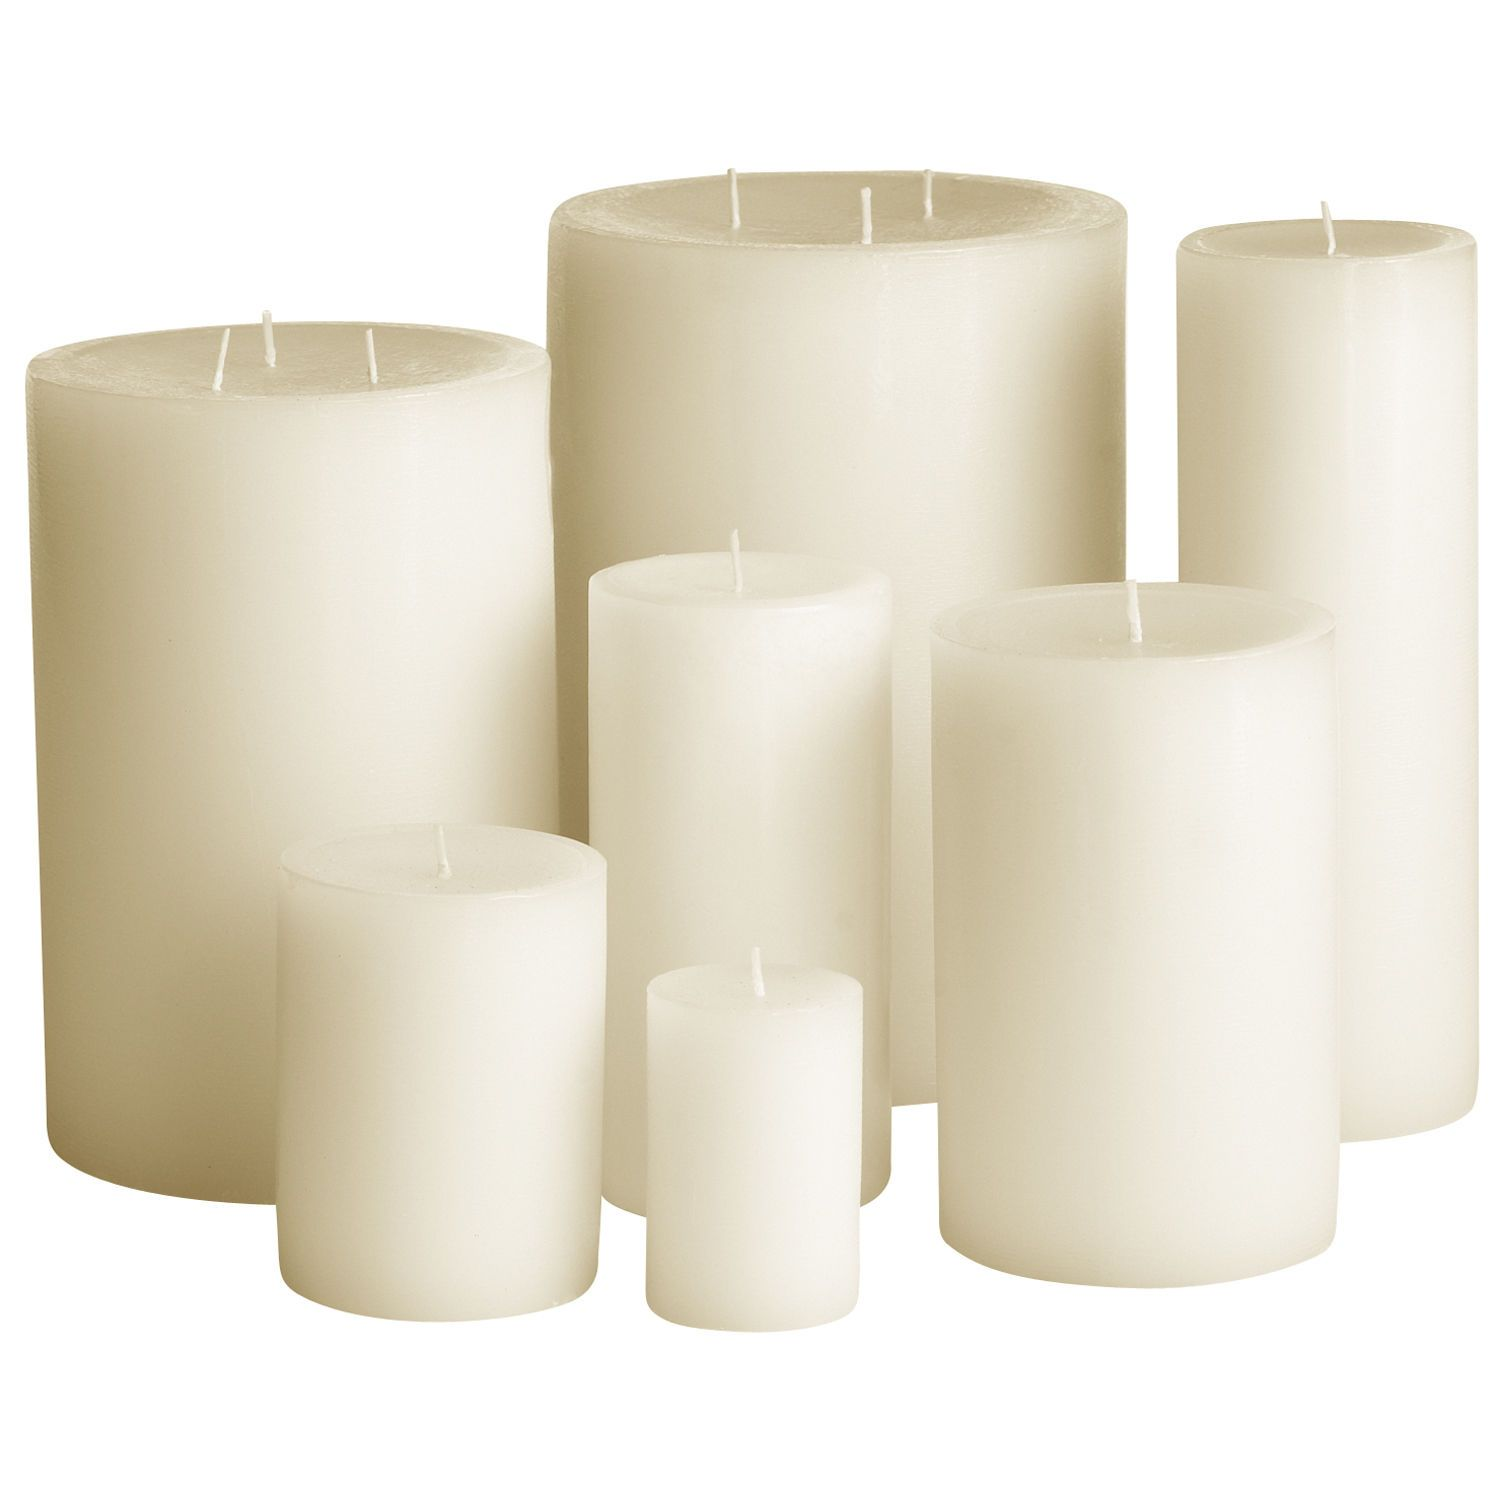 Unscented Ivory Candles   Pier 1 Imports